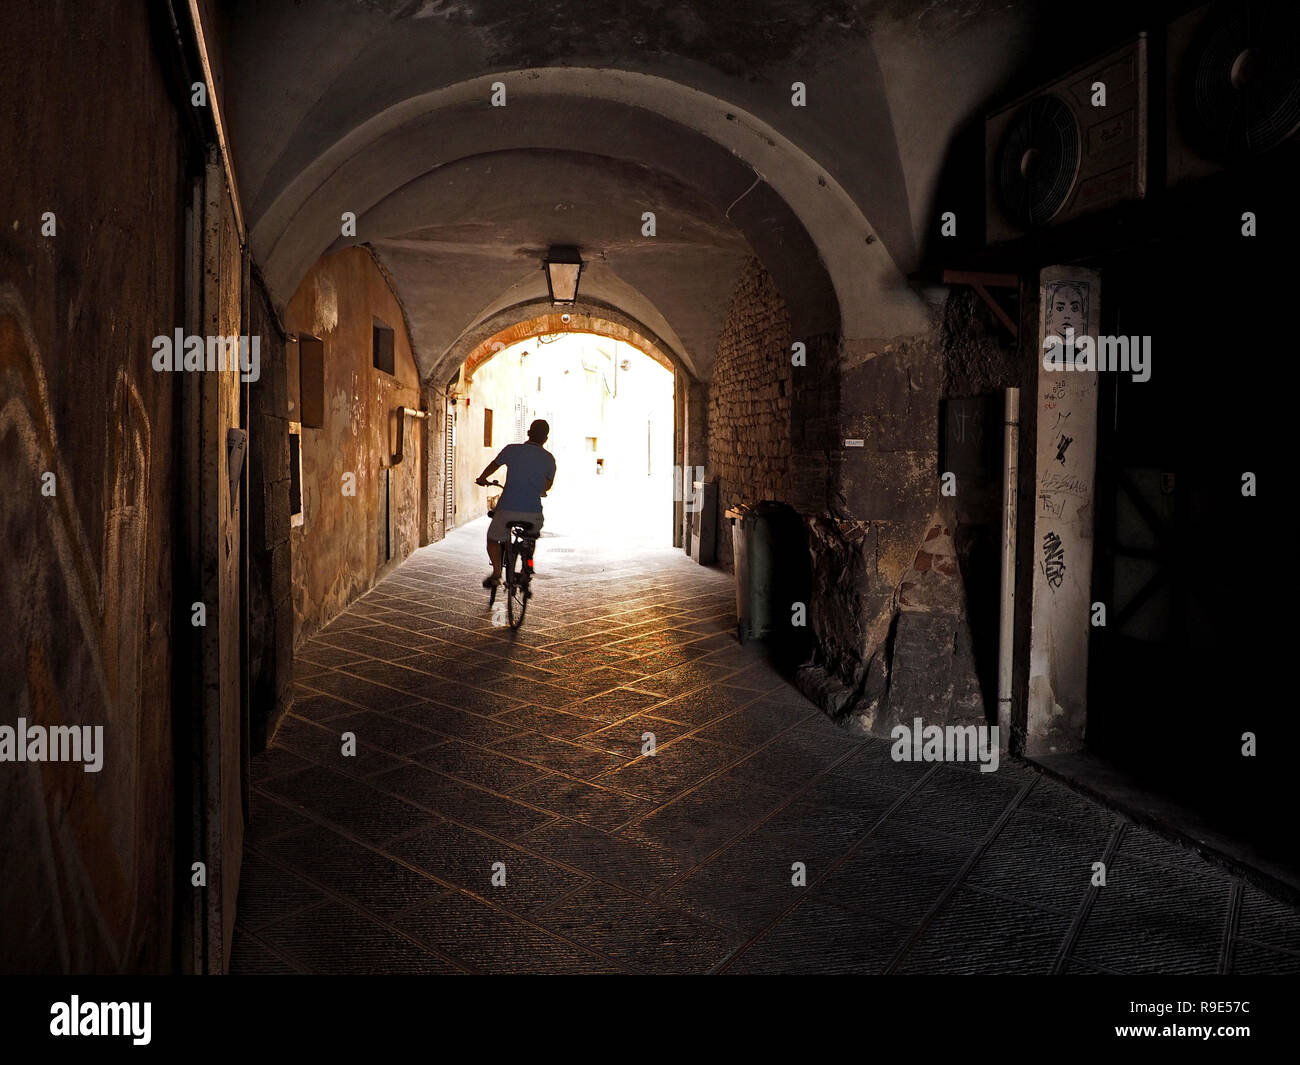 silhouetted single cyclist careers towards the light along a stone-paved alleyway through vaulted tunnel between city centre buildings in Pisa, Italy - Stock Image